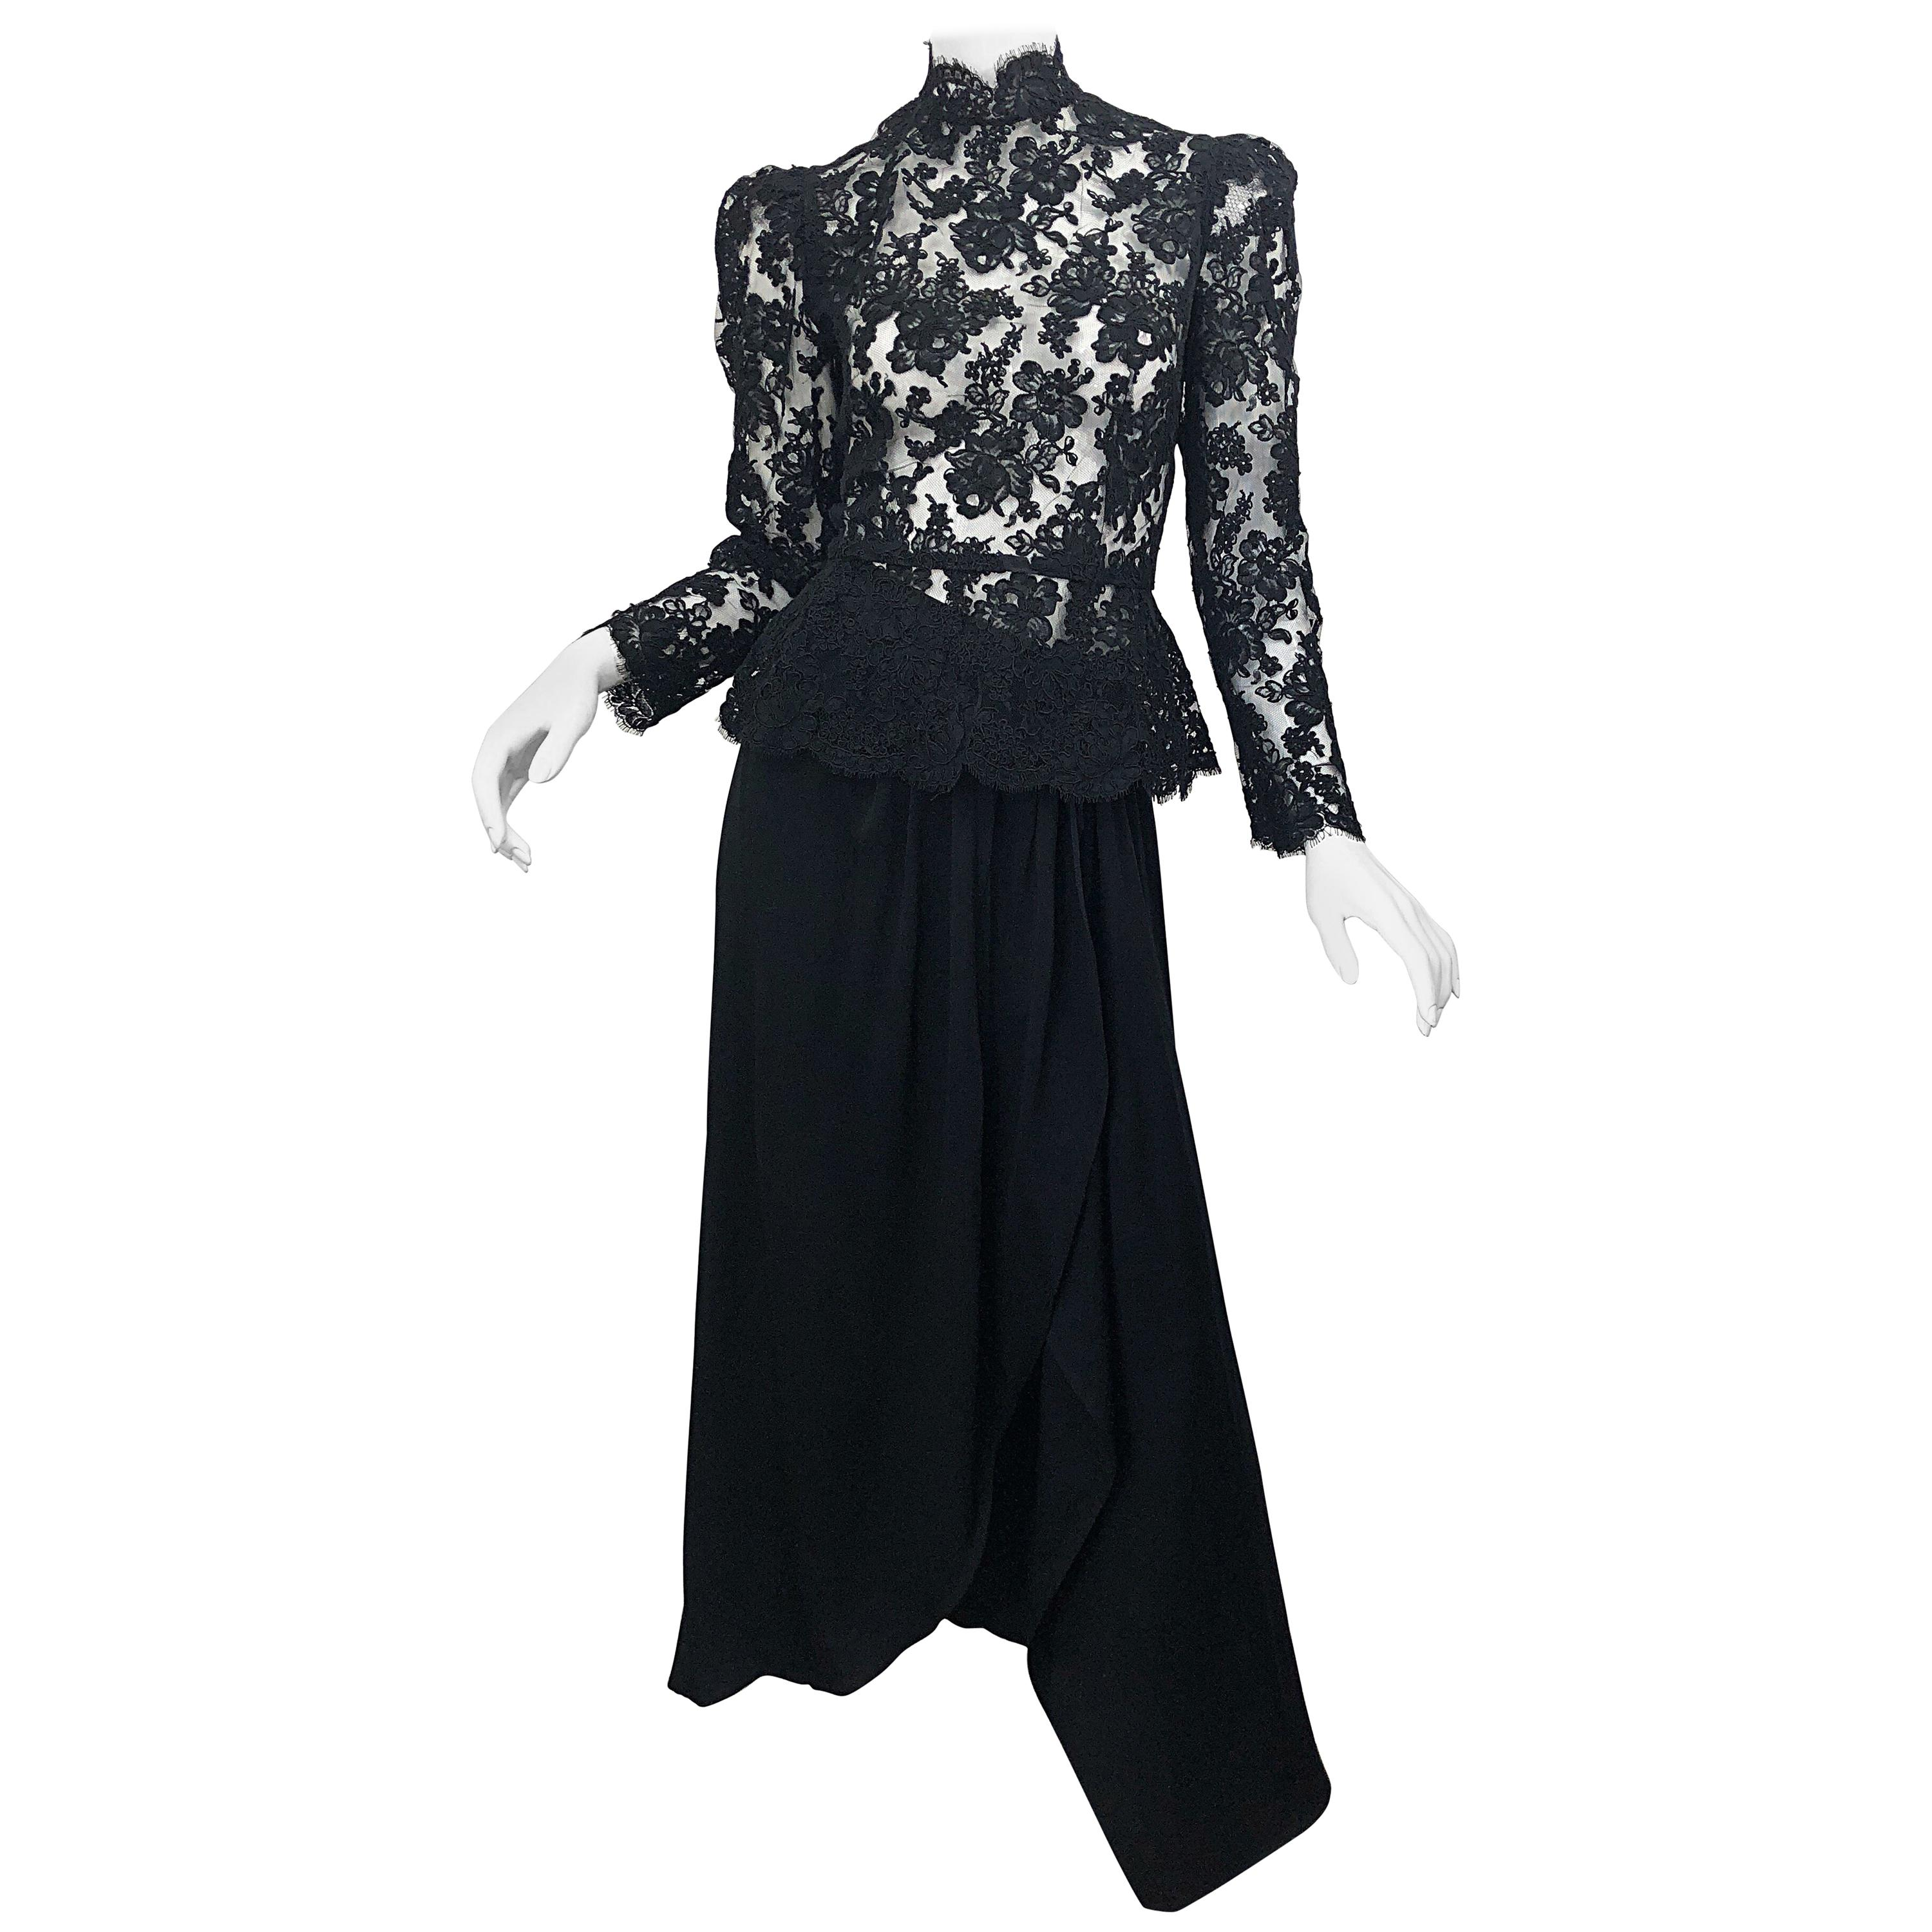 Vicky Teil Fashion  Dresses   More - 140 For Sale at 1stdibs c98e17d81